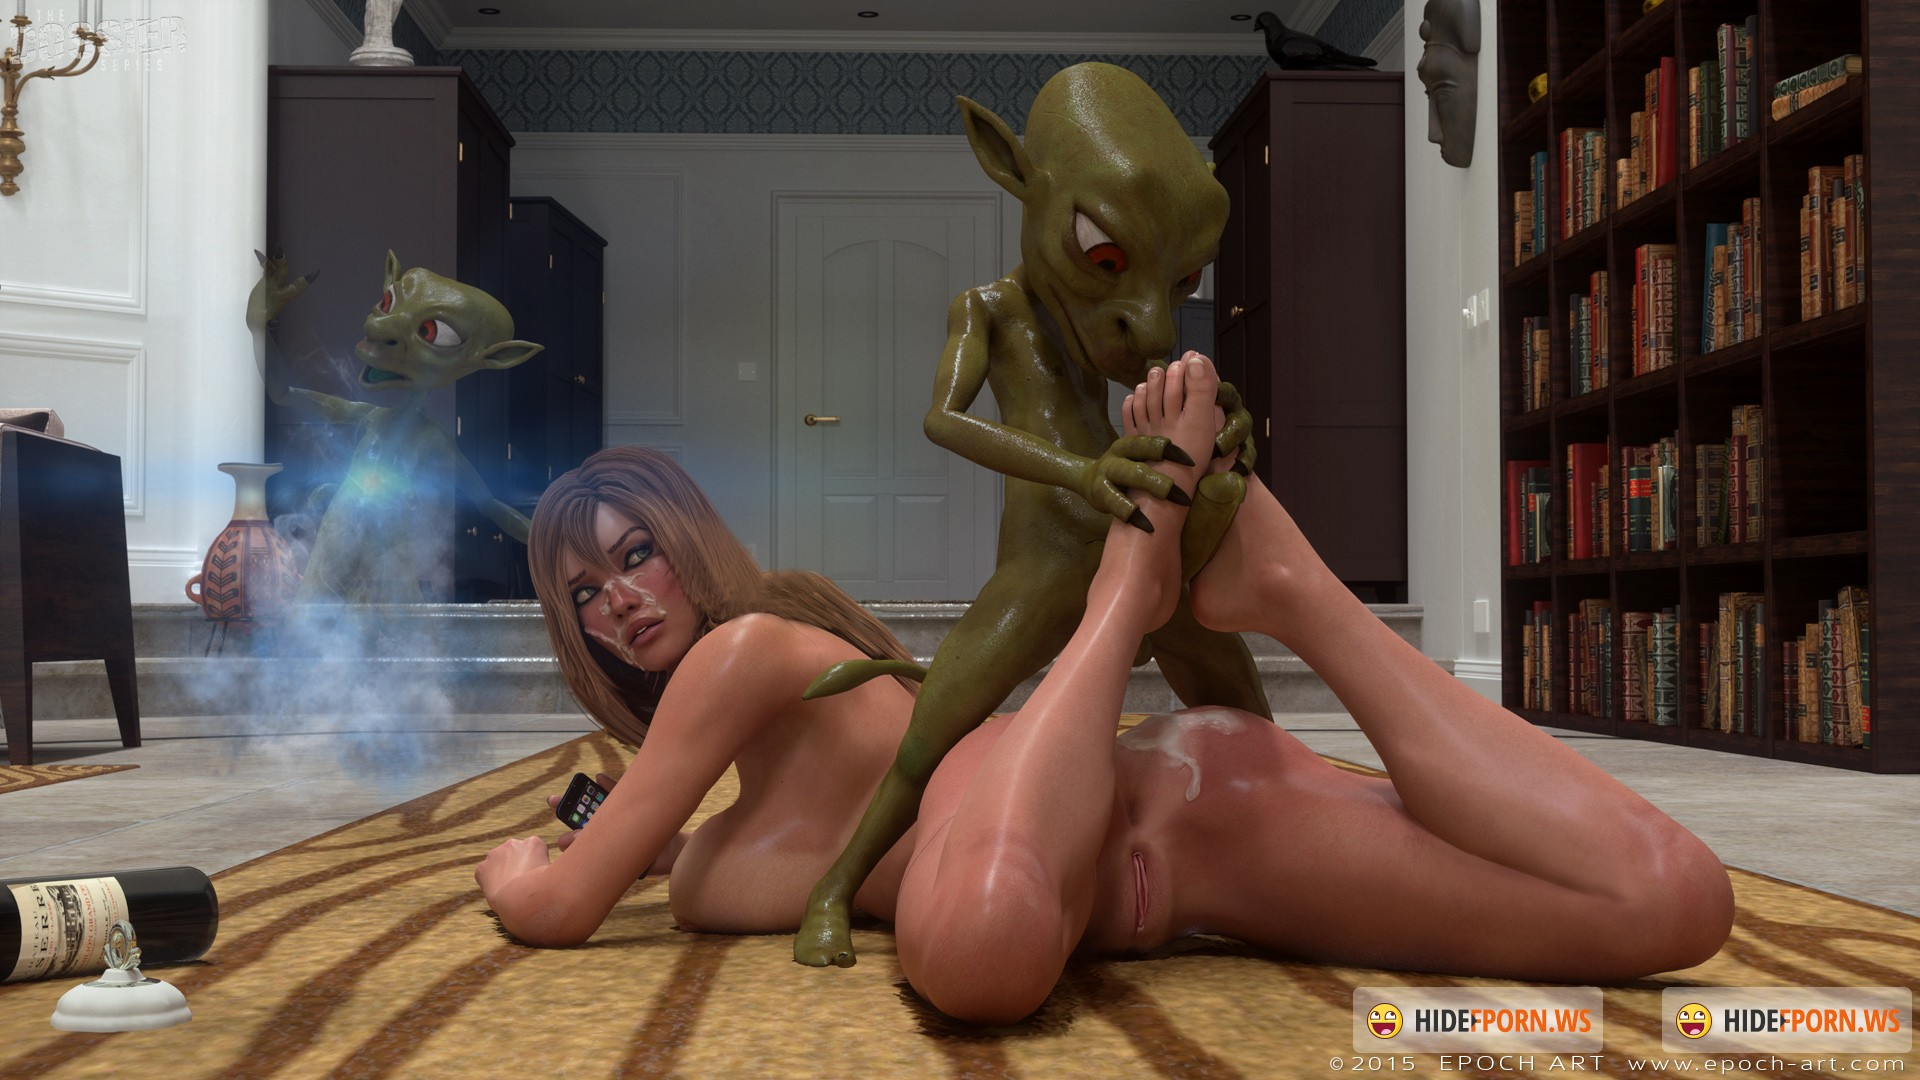 Monster porn game online play porn galleries